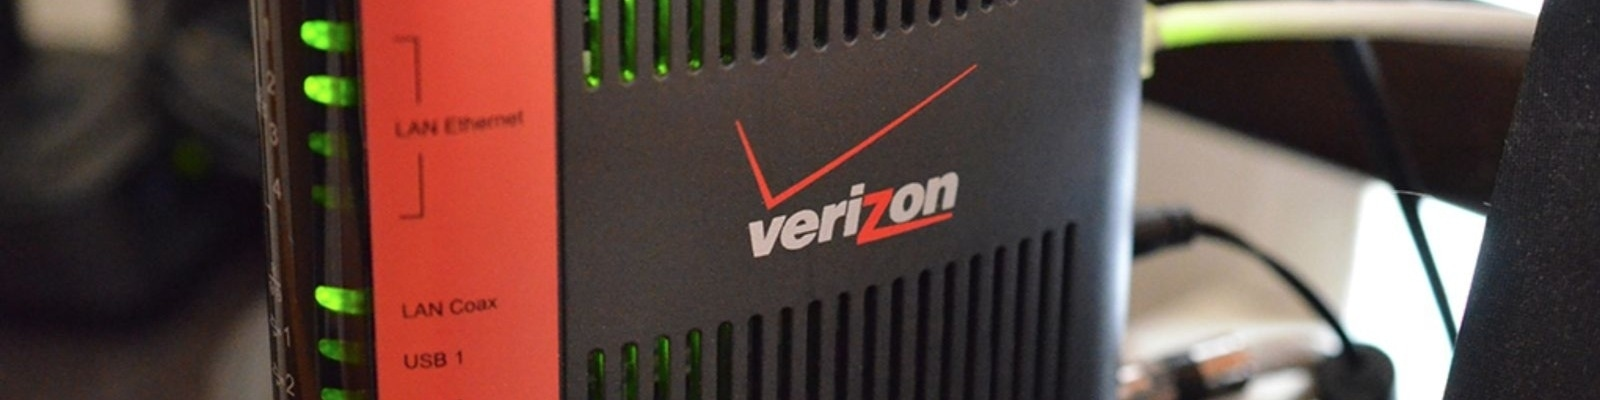 How to Get the Best Deal on Verizon Fios